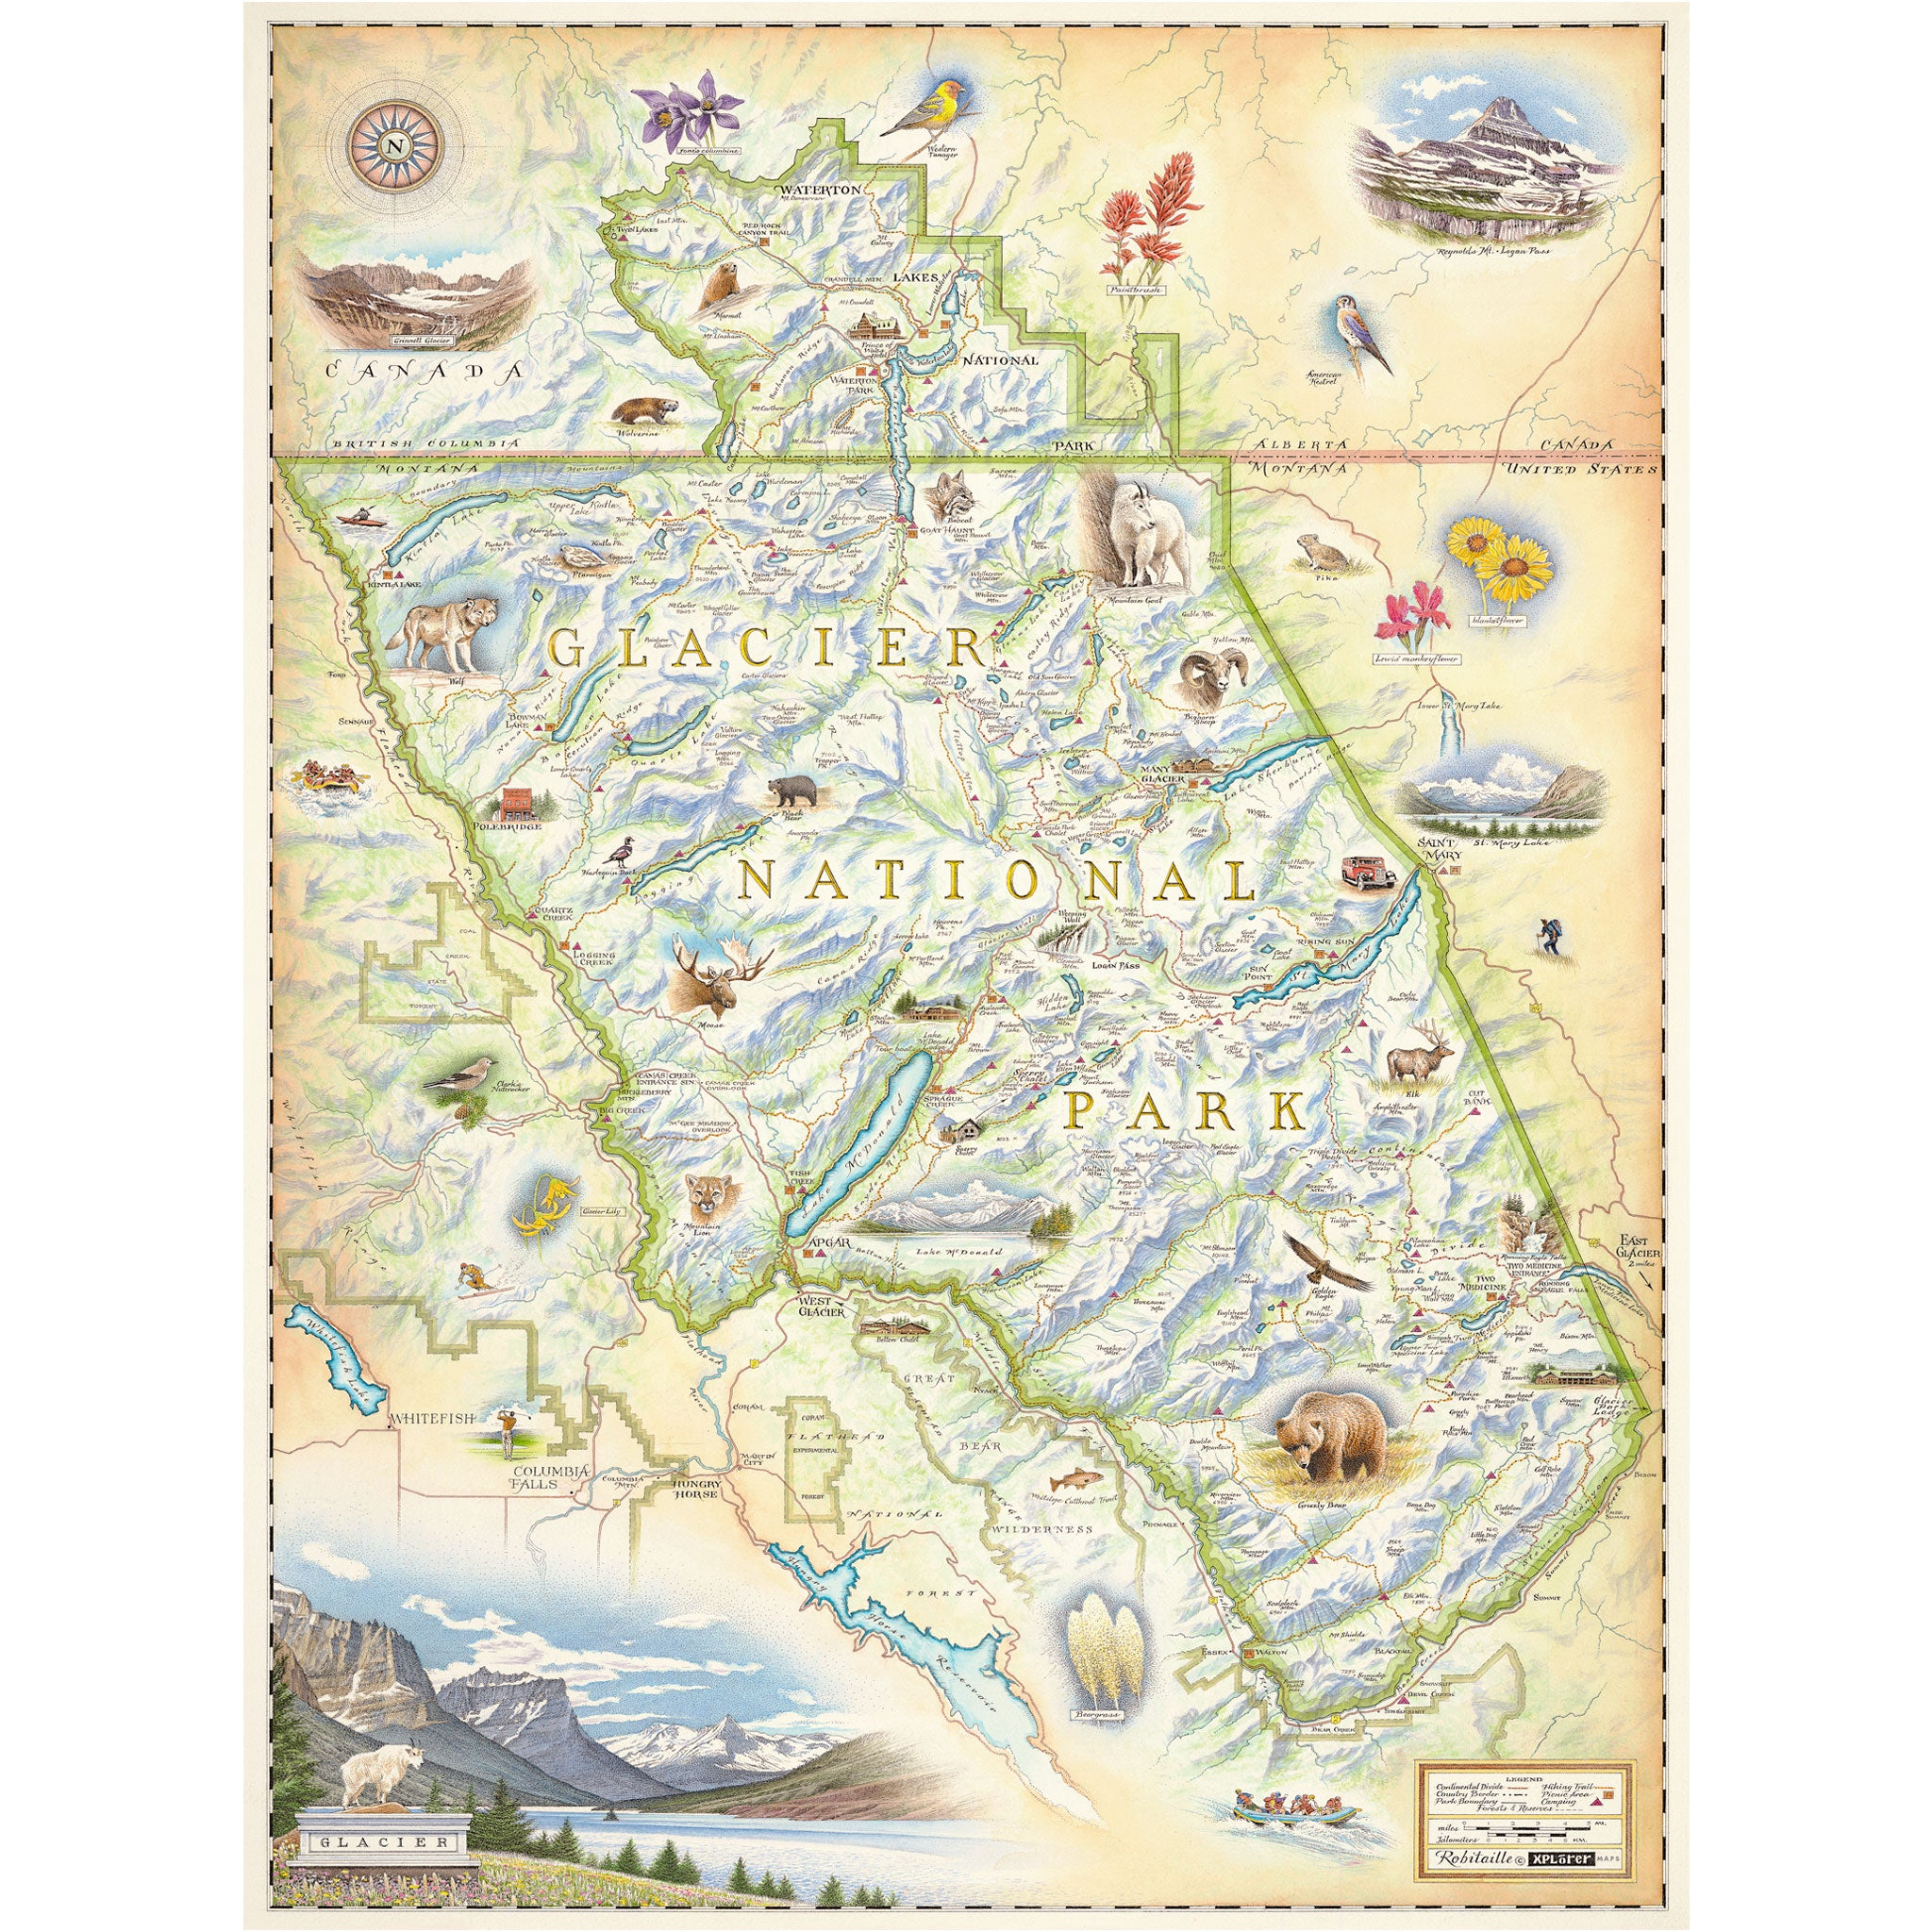 Glacier National Park Map on lagoon map, swamp map, volcano map, lake map, antarctica map, bering strait on world map, river map, dune map, last glacial maximum map, marsh map, iceberg map, coral reef map, hamilton map, united states tornado map, desert map, physical geography map, delta map, gulf map, mountain map, valley map,